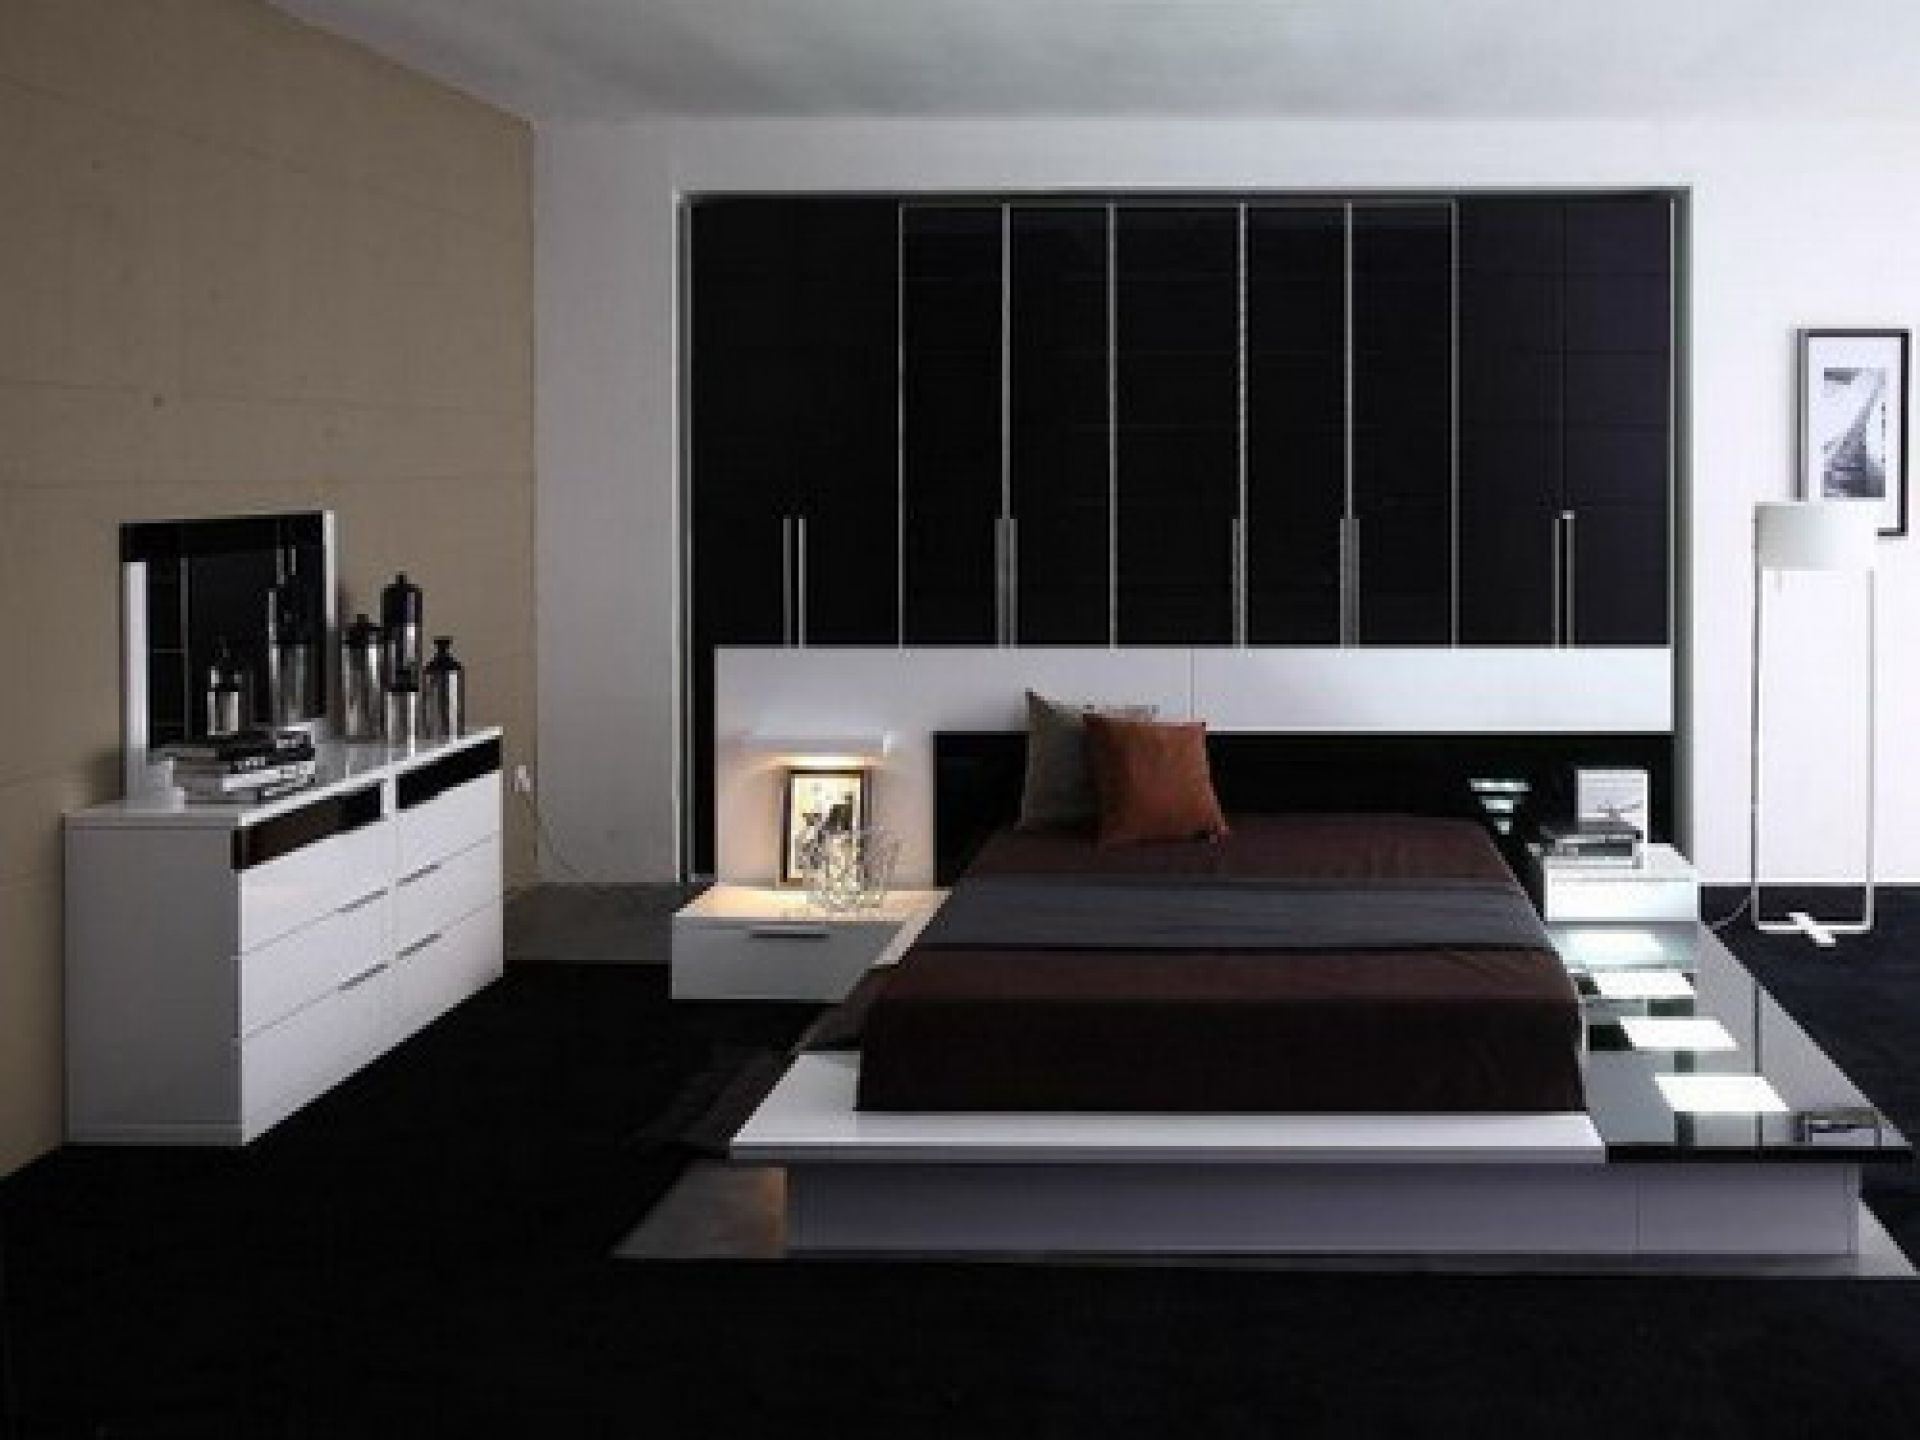 contemporary white gloss dresser bedroom cabinets as well as black cover low profile master bed frames - Bedrooms Design Ideas